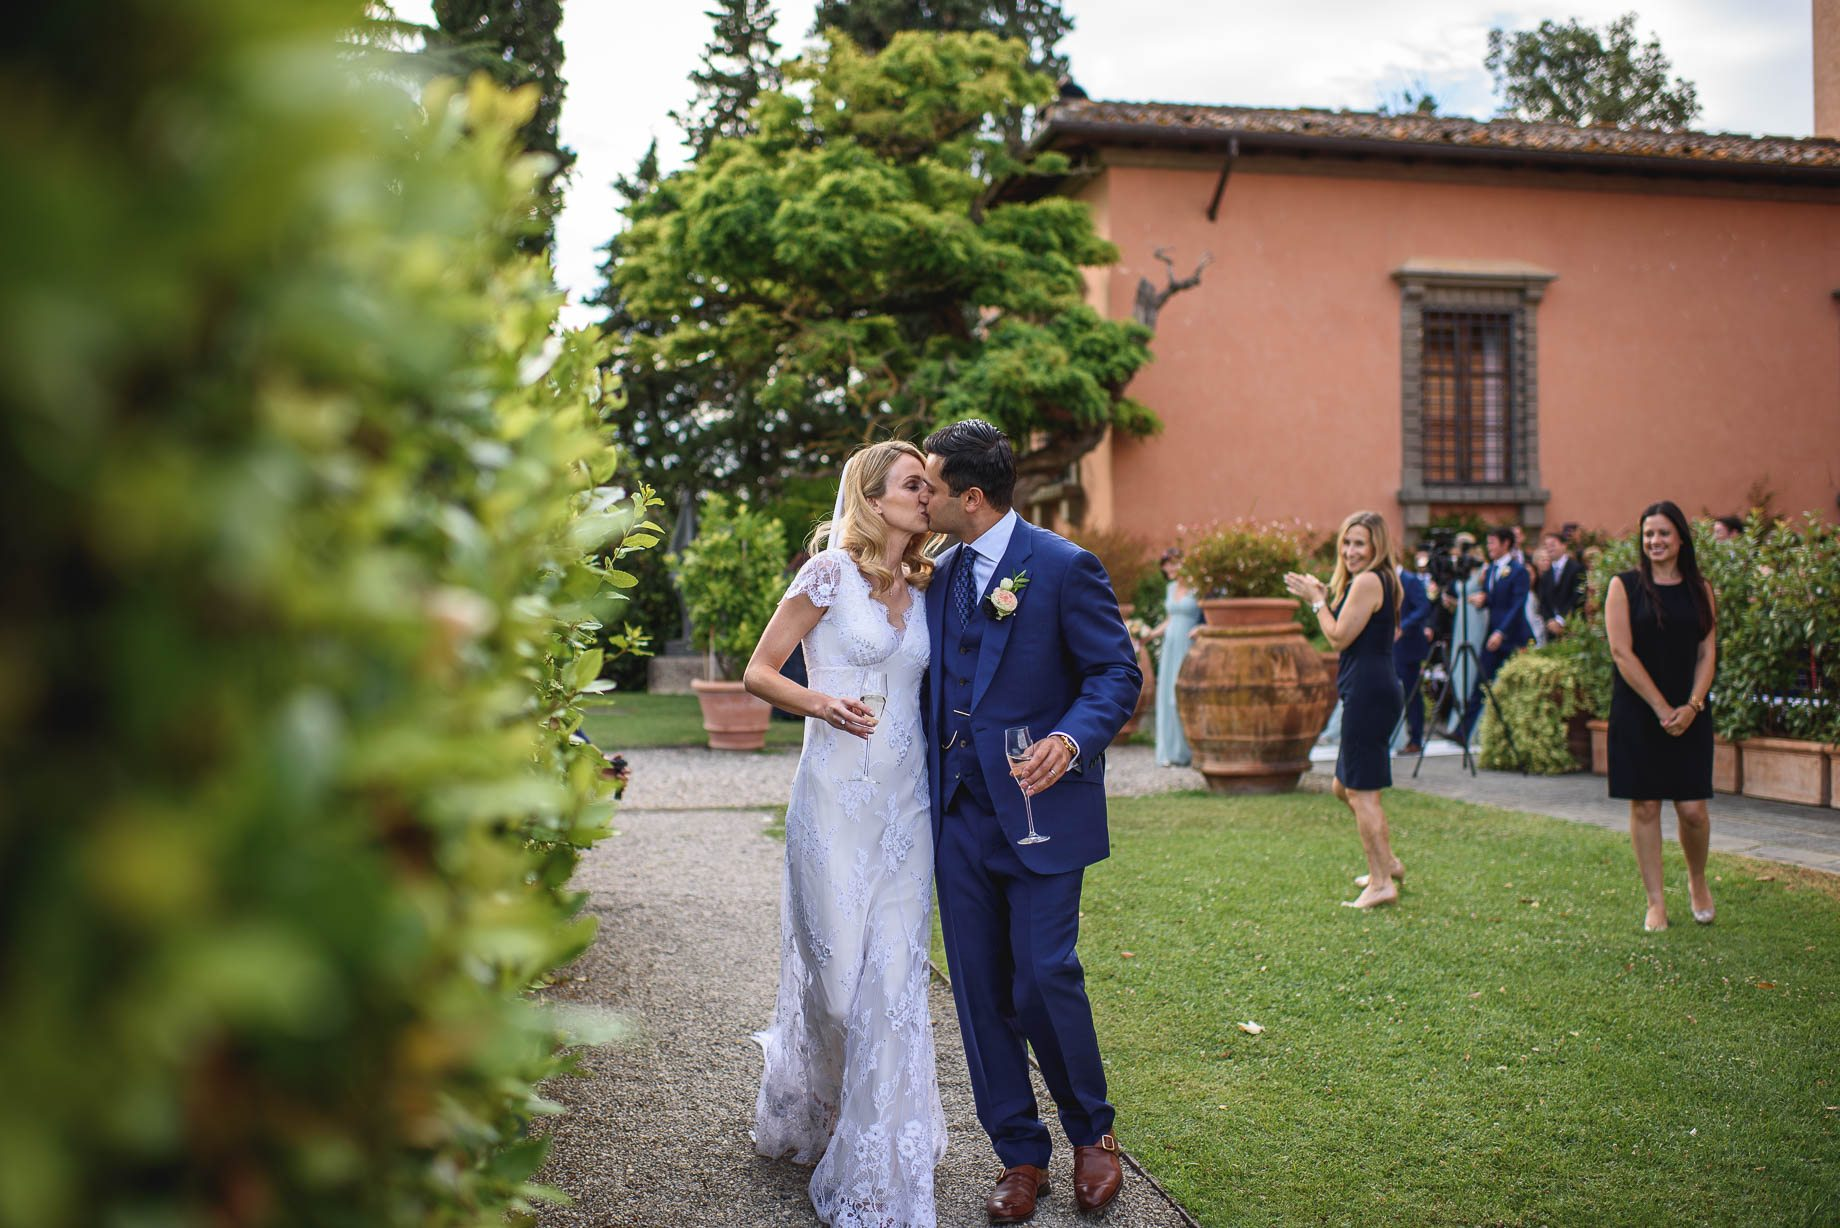 Tuscany wedding photography - Roisin and Moubin - Guy Collier Photography (115 of 251)